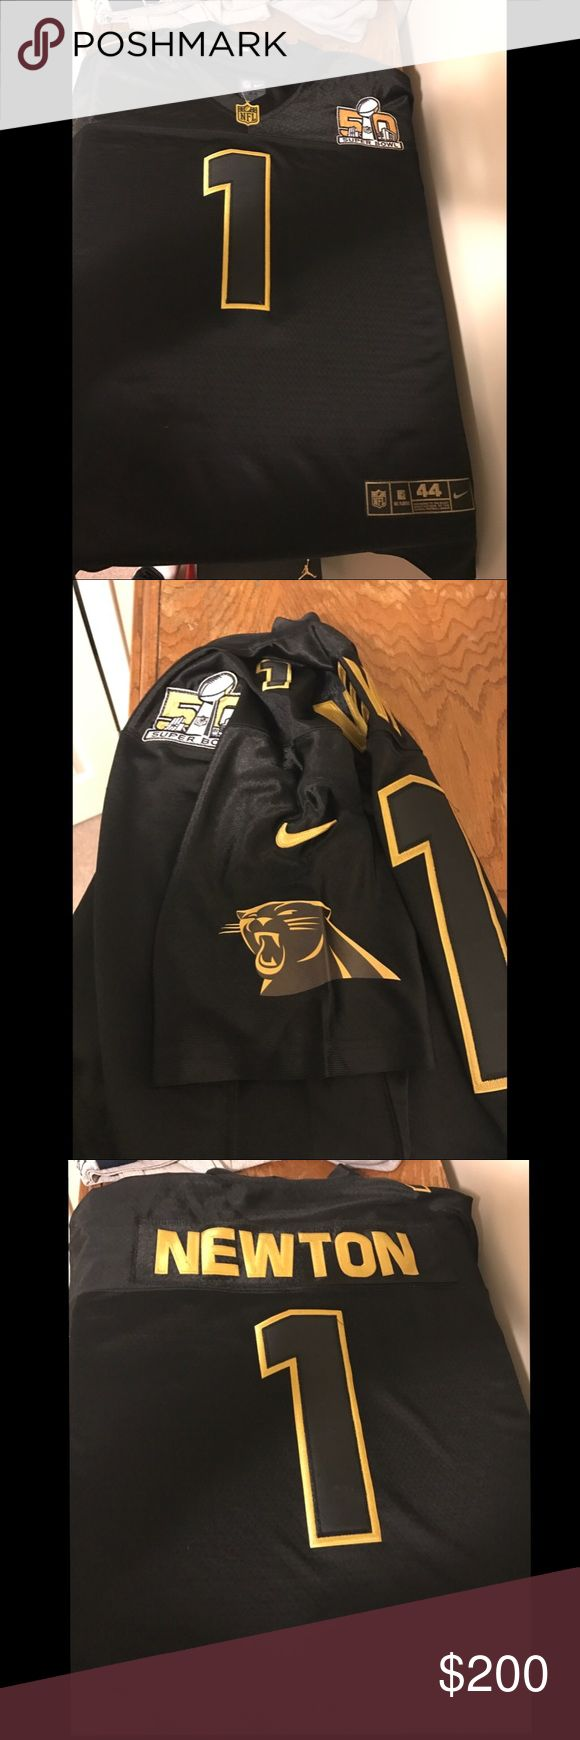 Black and gold cam newton jersey Black and gold cam newton jersey Shirts